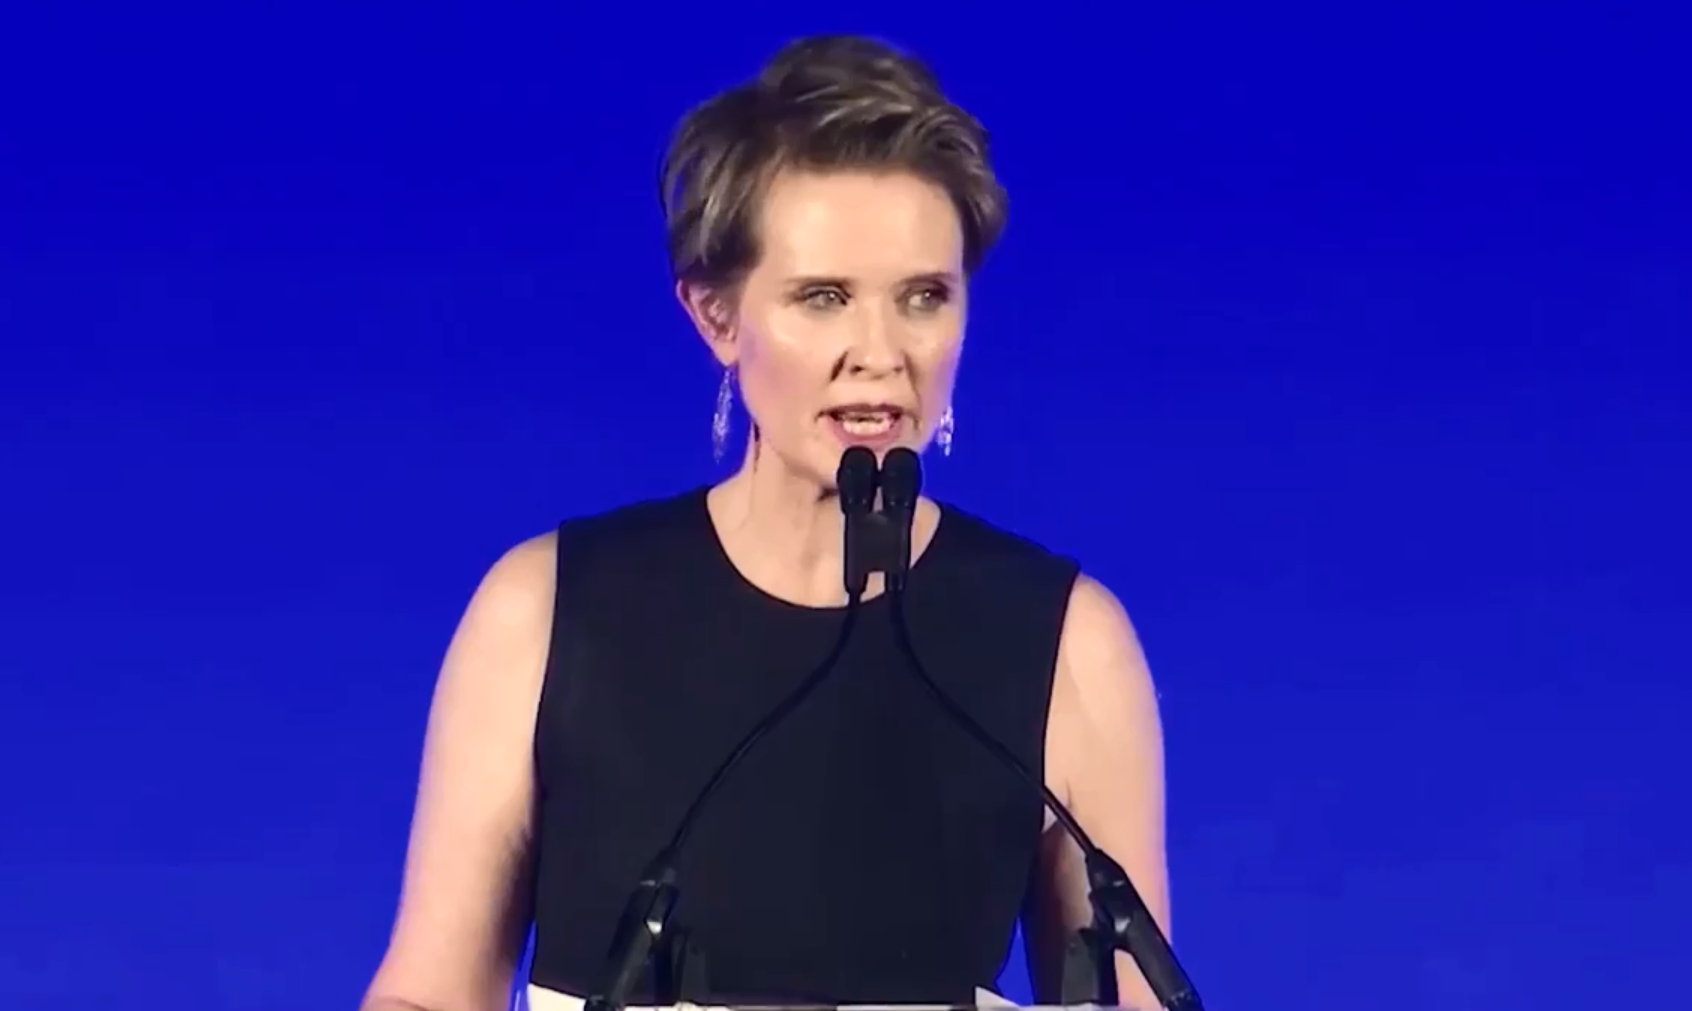 Sex and the City star Cynthia Nixon quits acting to run for Governor of New York